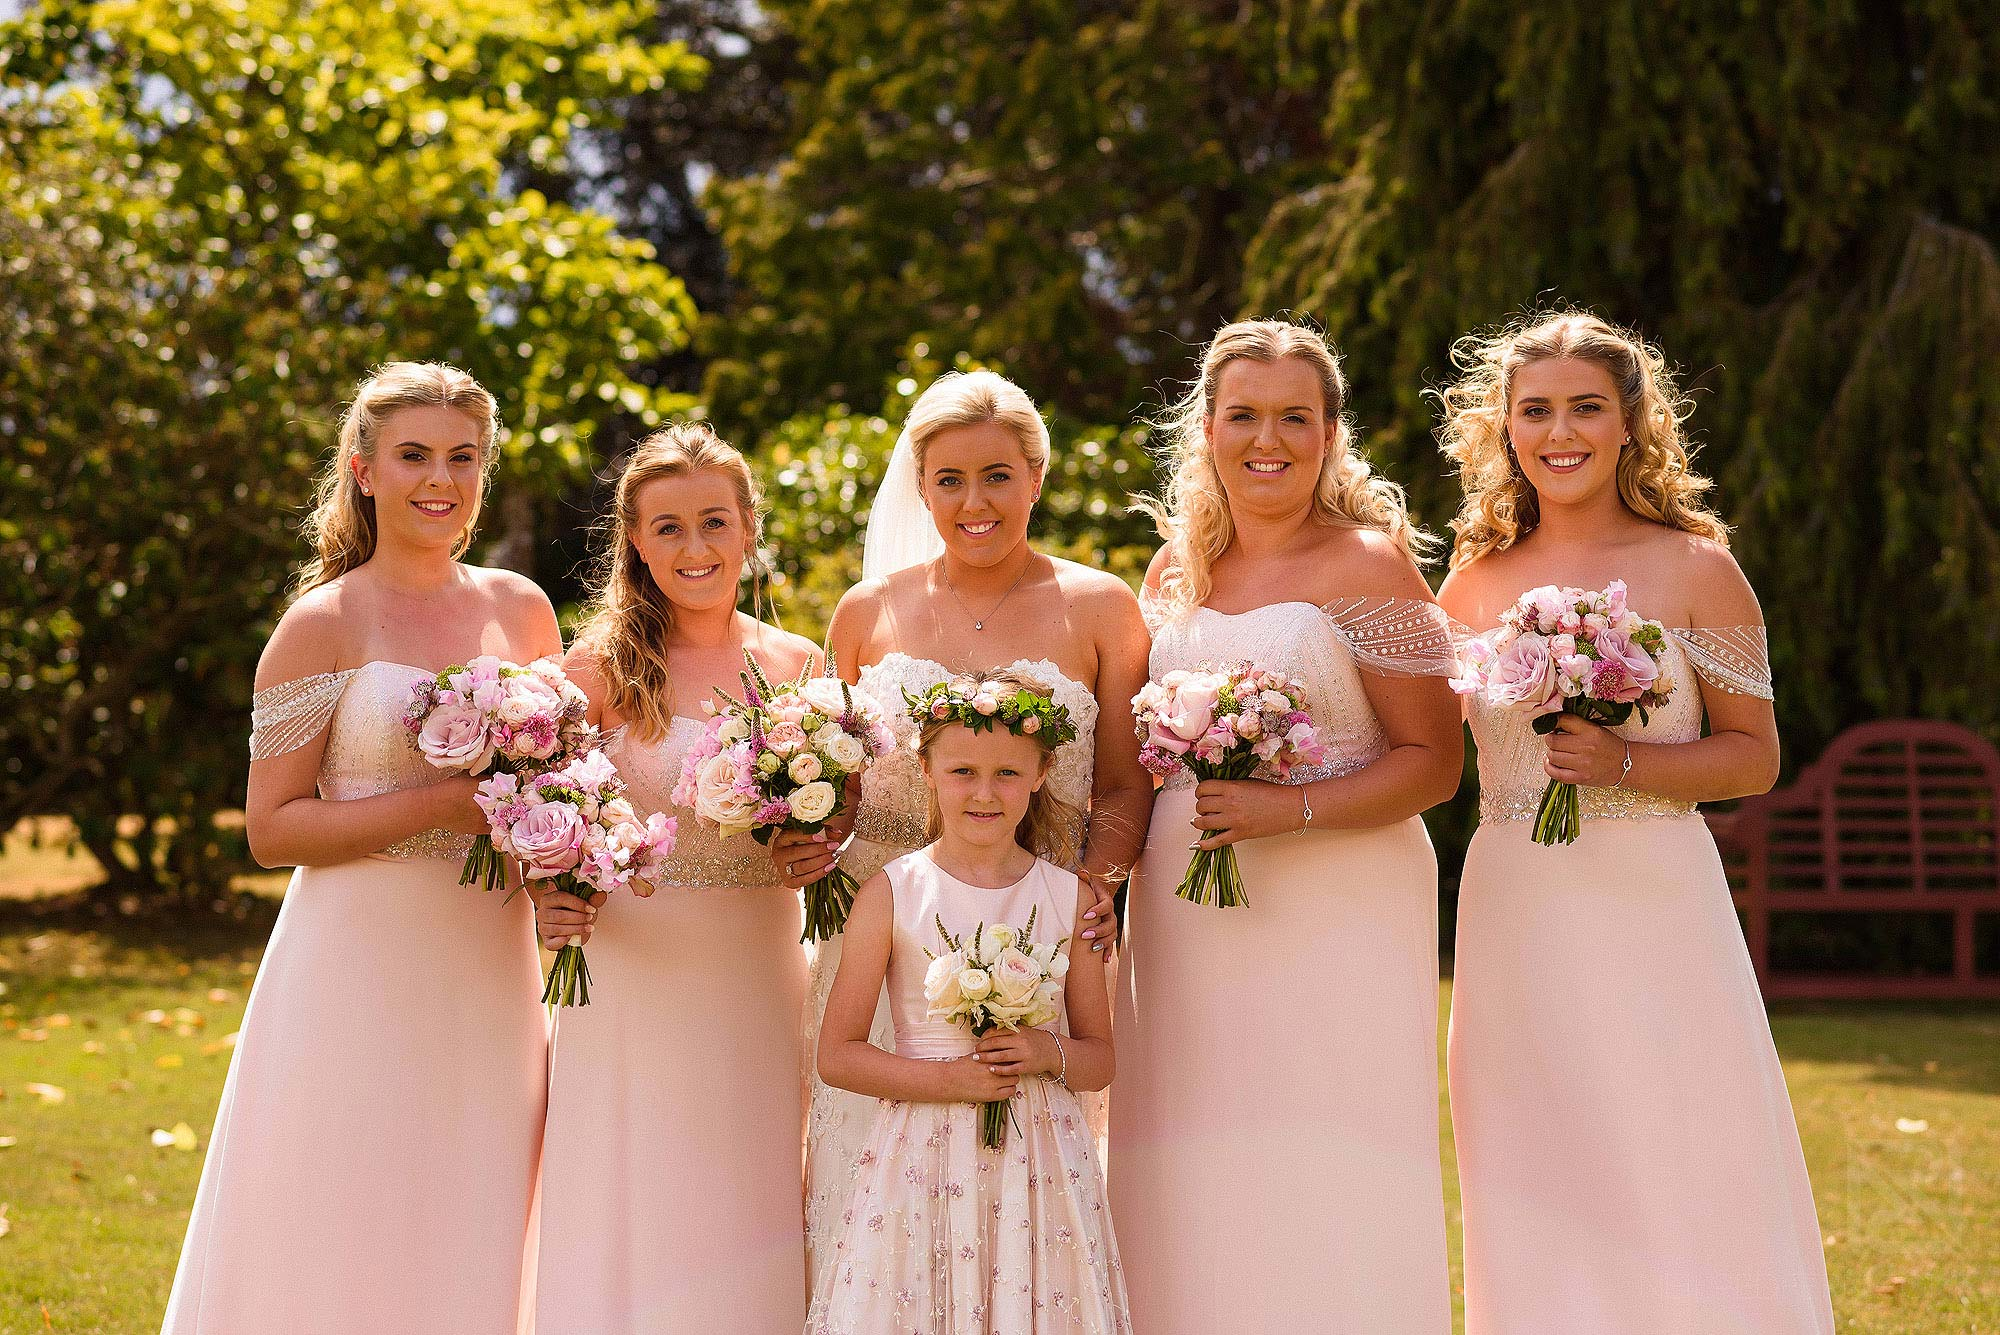 group photograph of bridal party